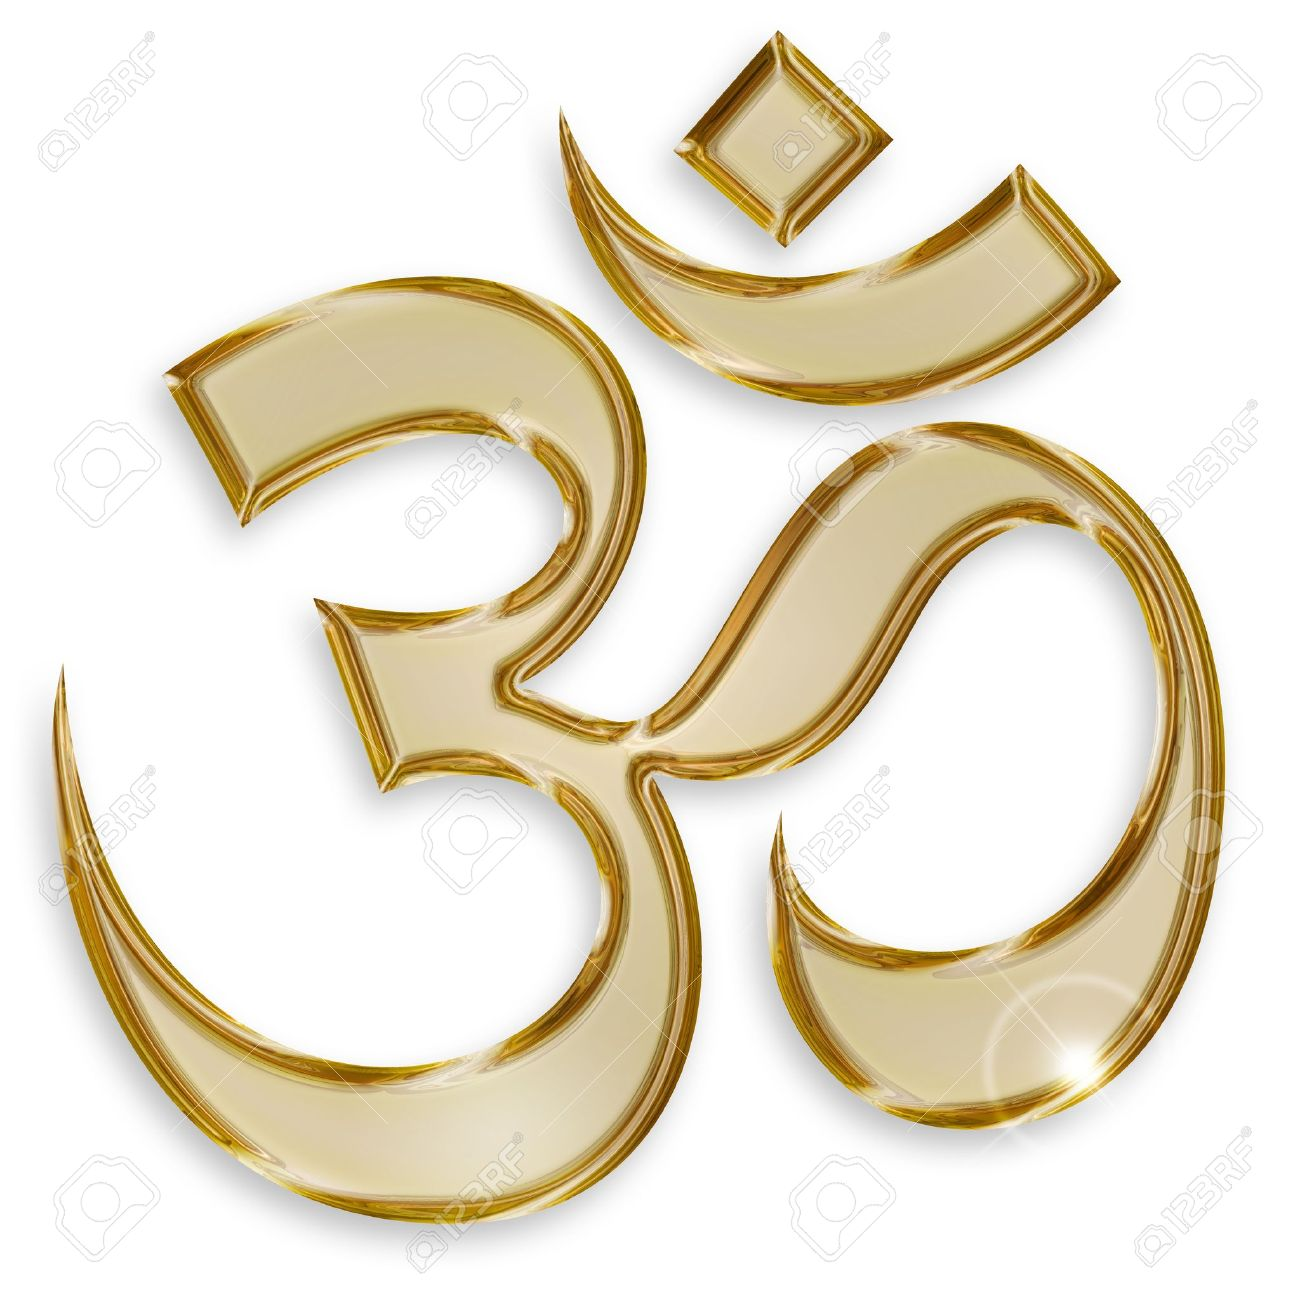 Hindu Om Symbol Isolated On White Background Stock Photo Picture